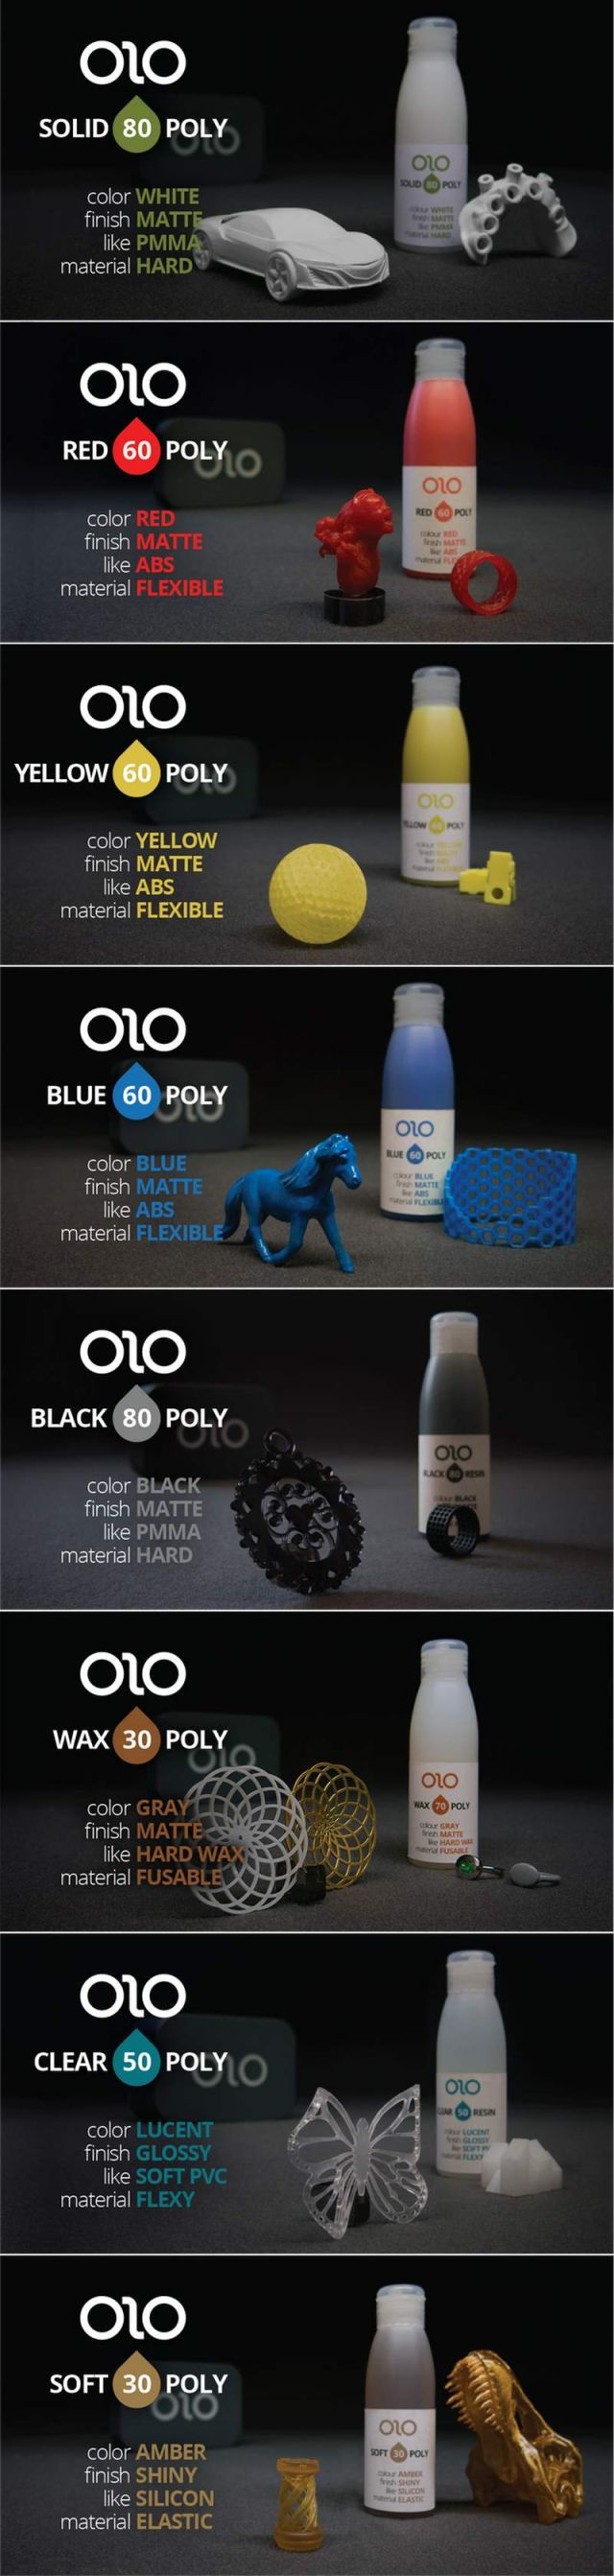 OLO - First Smartphone 3D Printer (1)